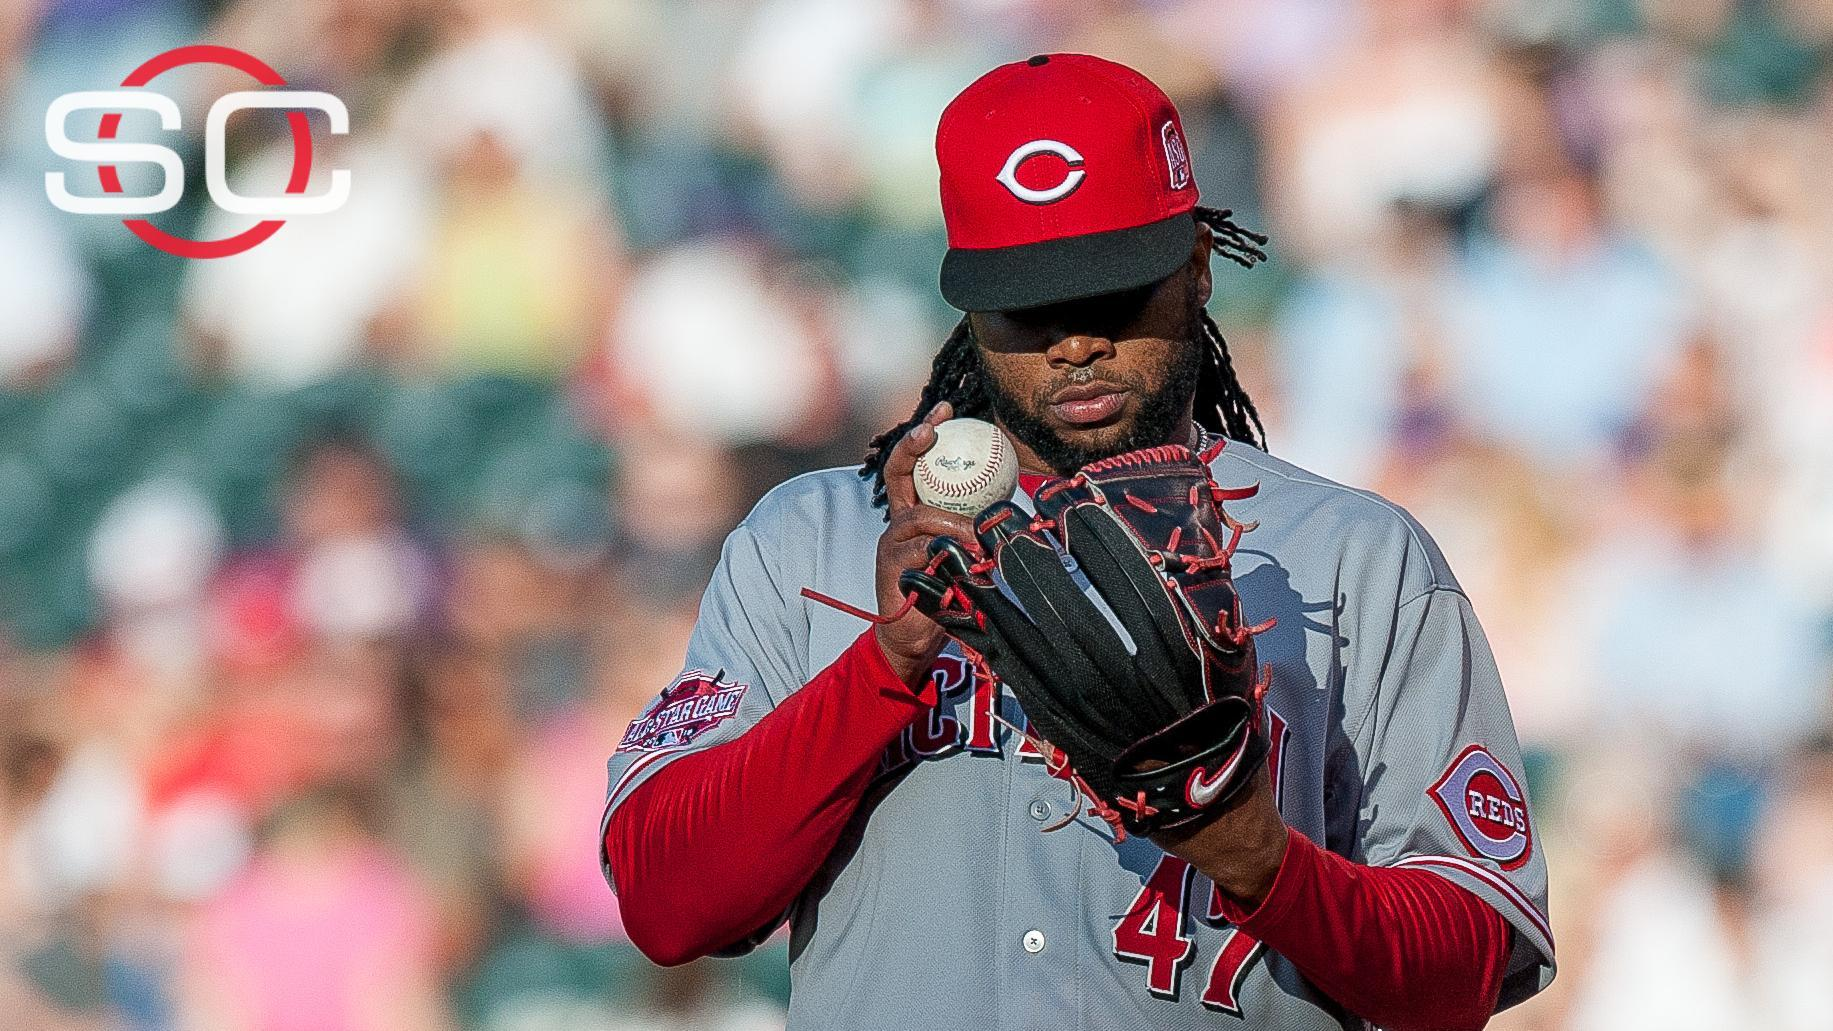 http://a.espncdn.com/media/motion/2015/0726/dm_150726_mlb_cueto_trade929/dm_150726_mlb_cueto_trade929.jpg